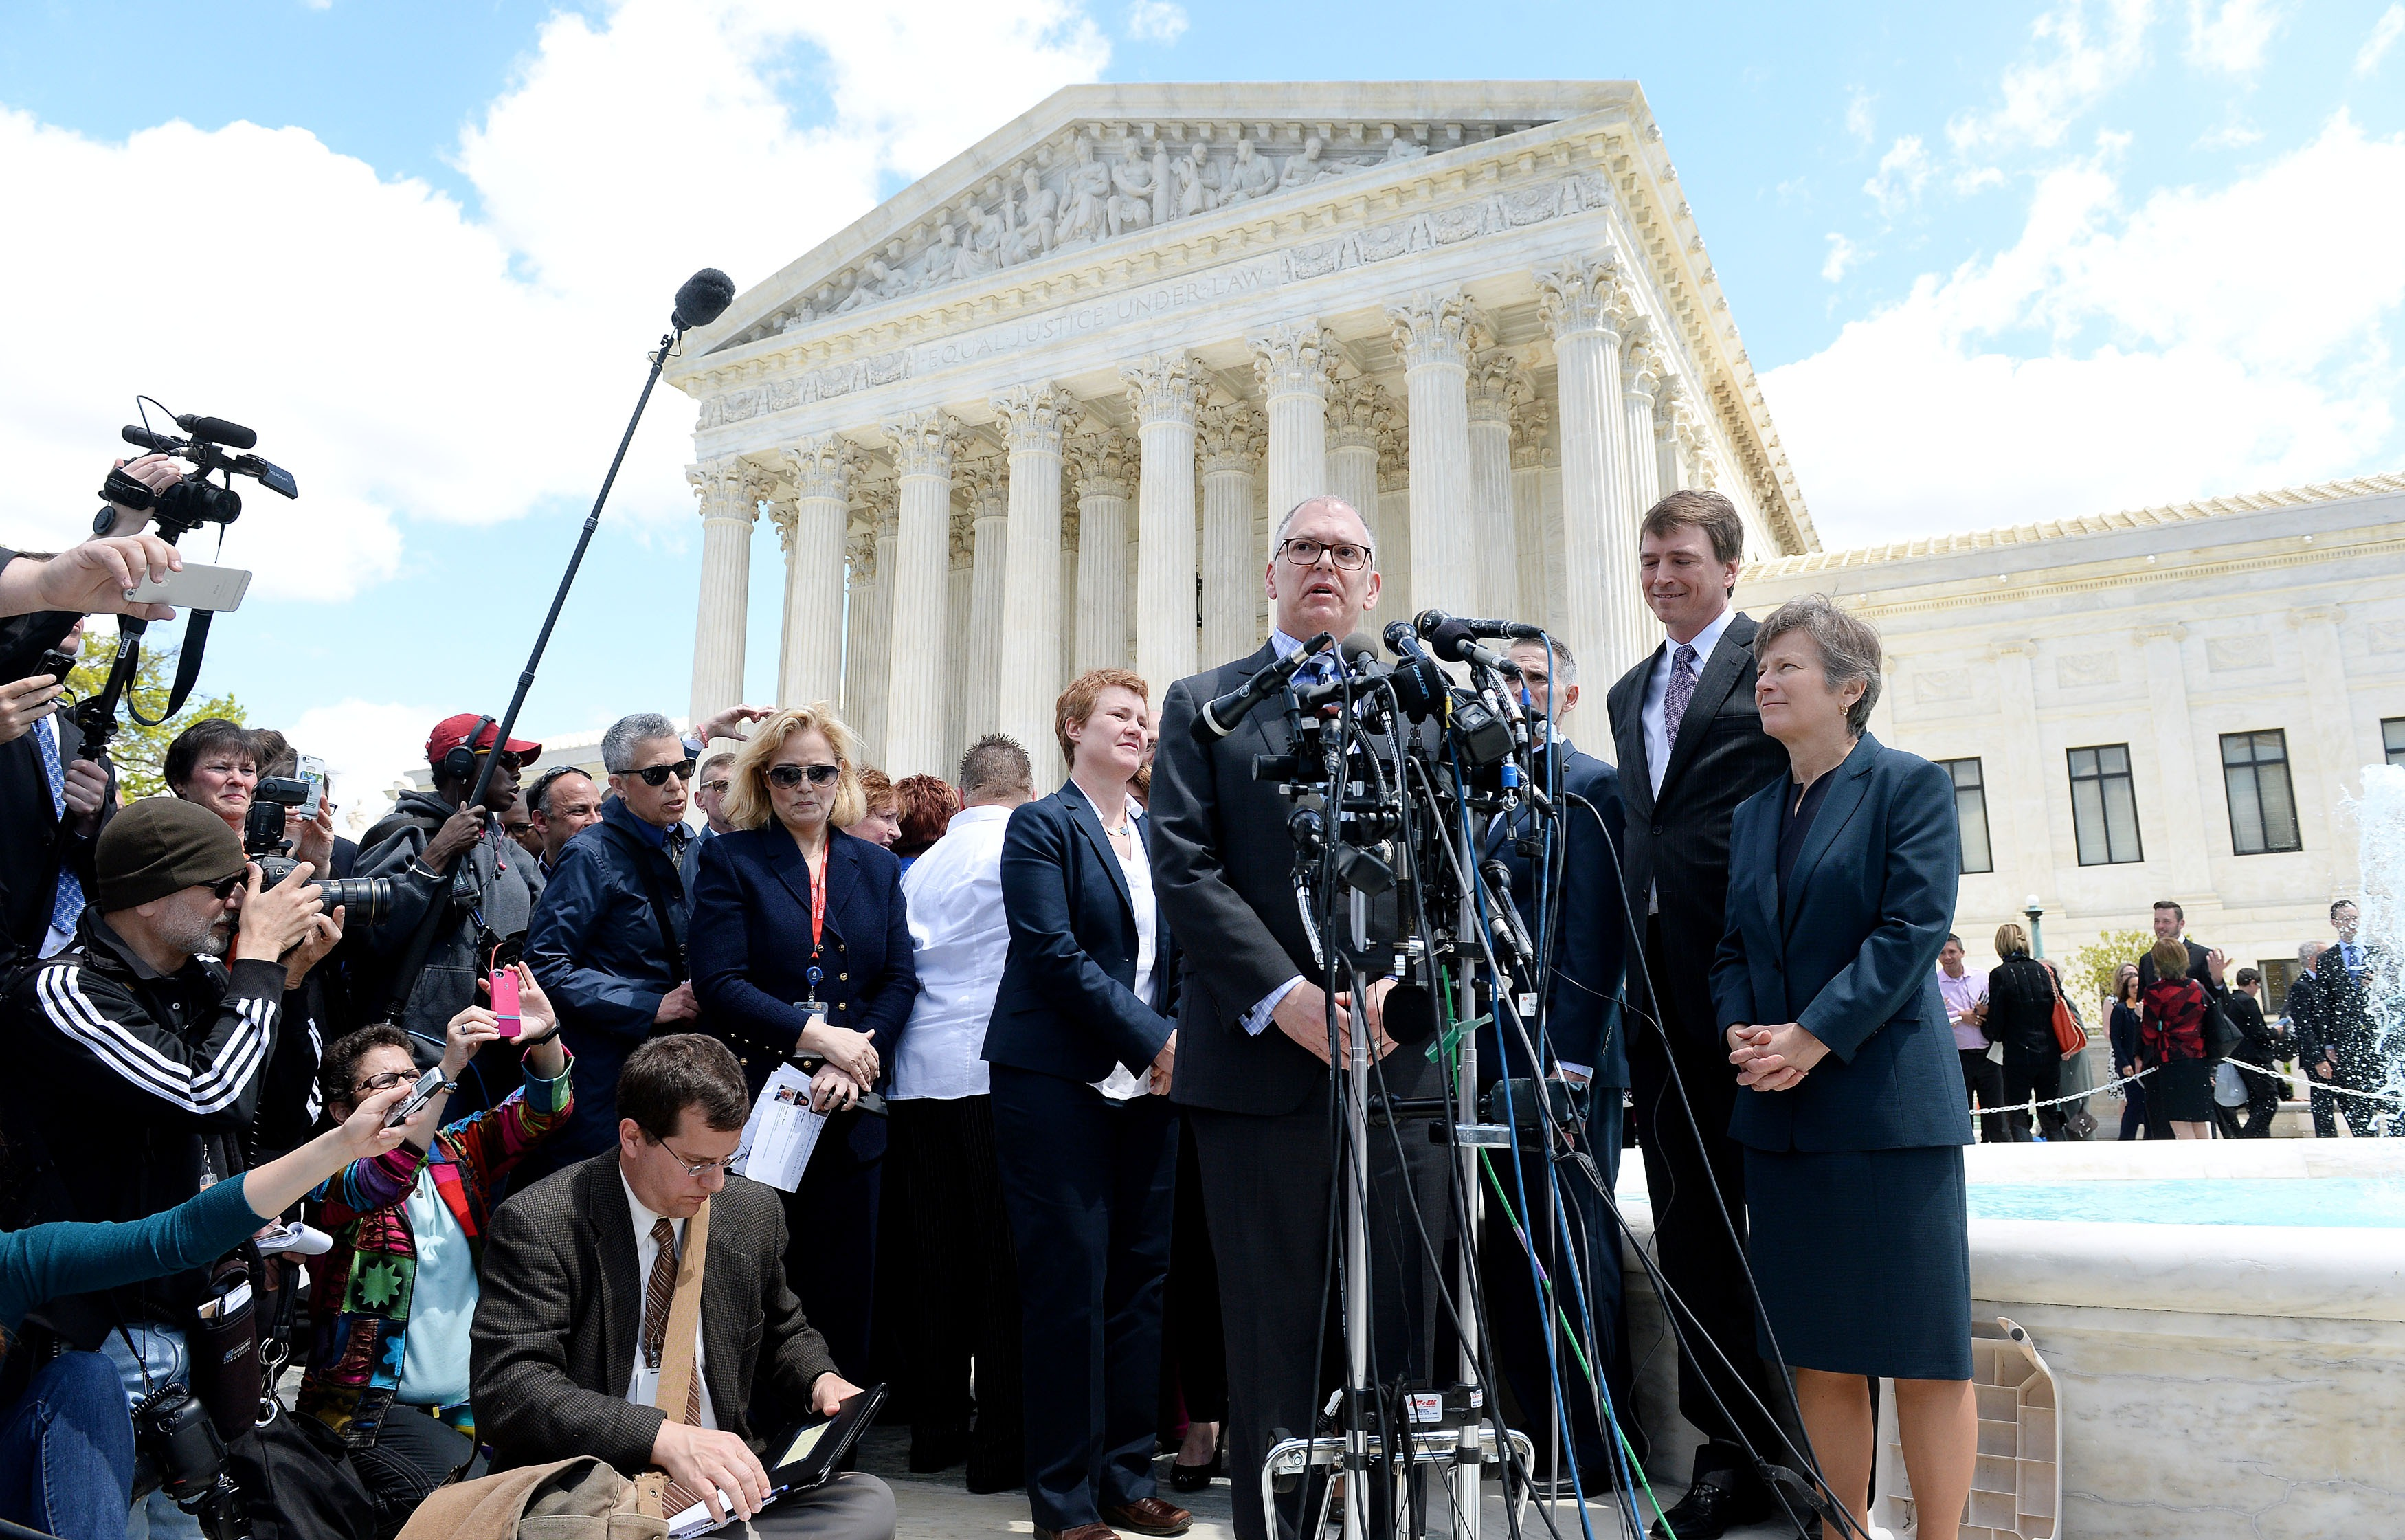 WASHINGTON, DC - APRIL 28: Plaintiff James Obergefell in the Obergefell v. Hodges case speaks outside the US Supreme Court on April 28, 2015 in Washington, DC. The Supreme Court meets to hear arguments whether same-sex couples have a constitutional right to wed in the United States, with a final decision expected in June. (Photo by Olivier Douliery/Getty Images)